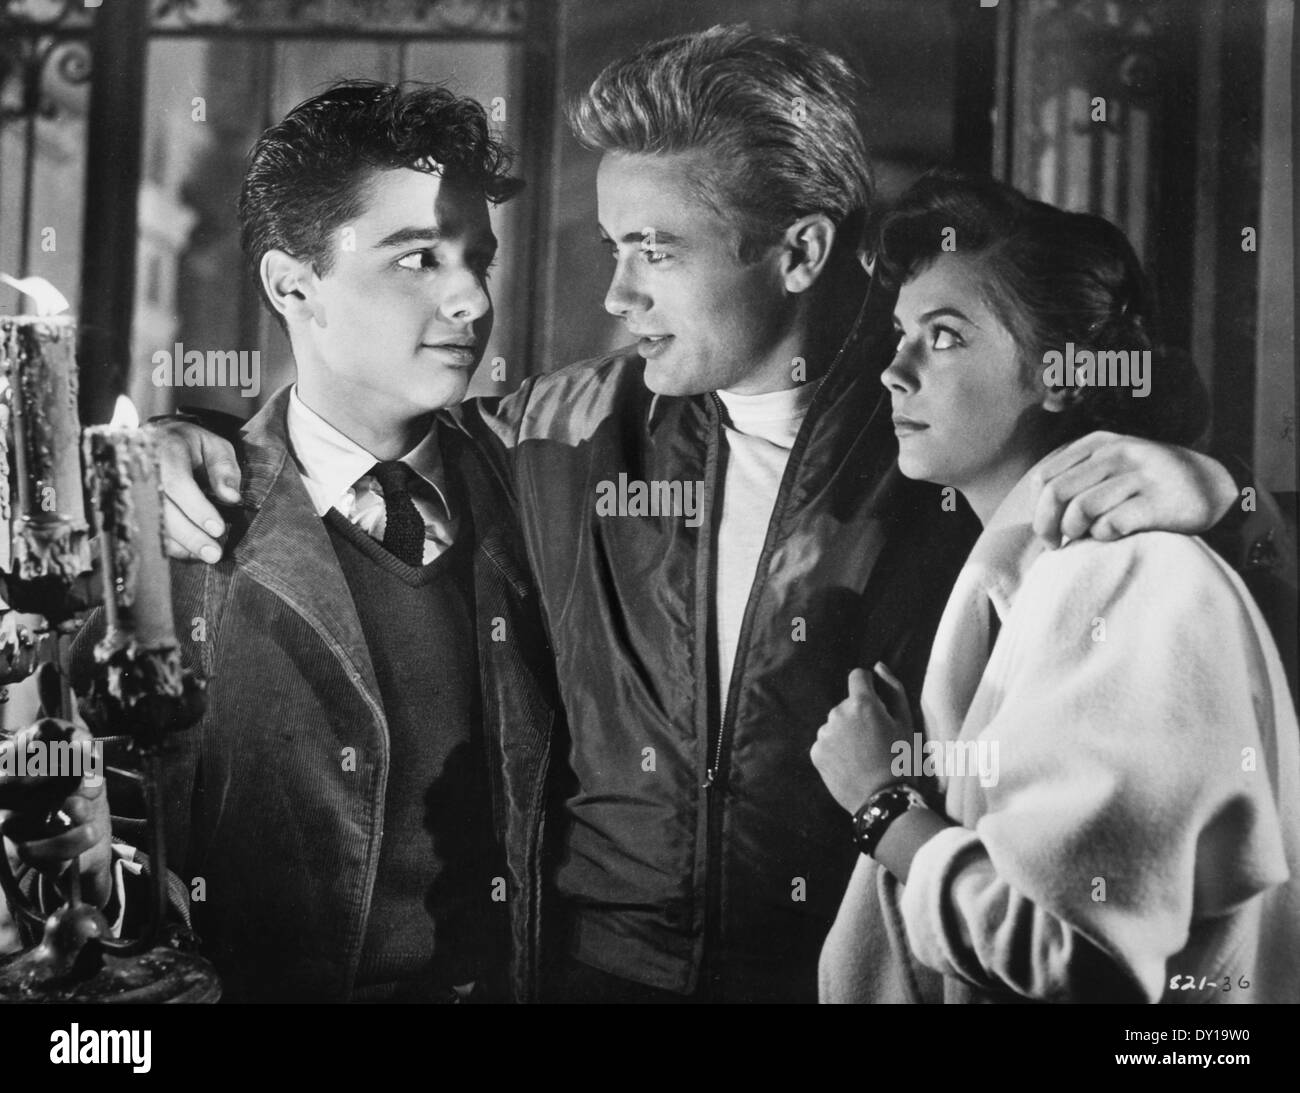 Sal Mineo, James Dean and Natalie Wood, on-set of the Film, 'Rebel Without a Cause', 1955 - Stock Image